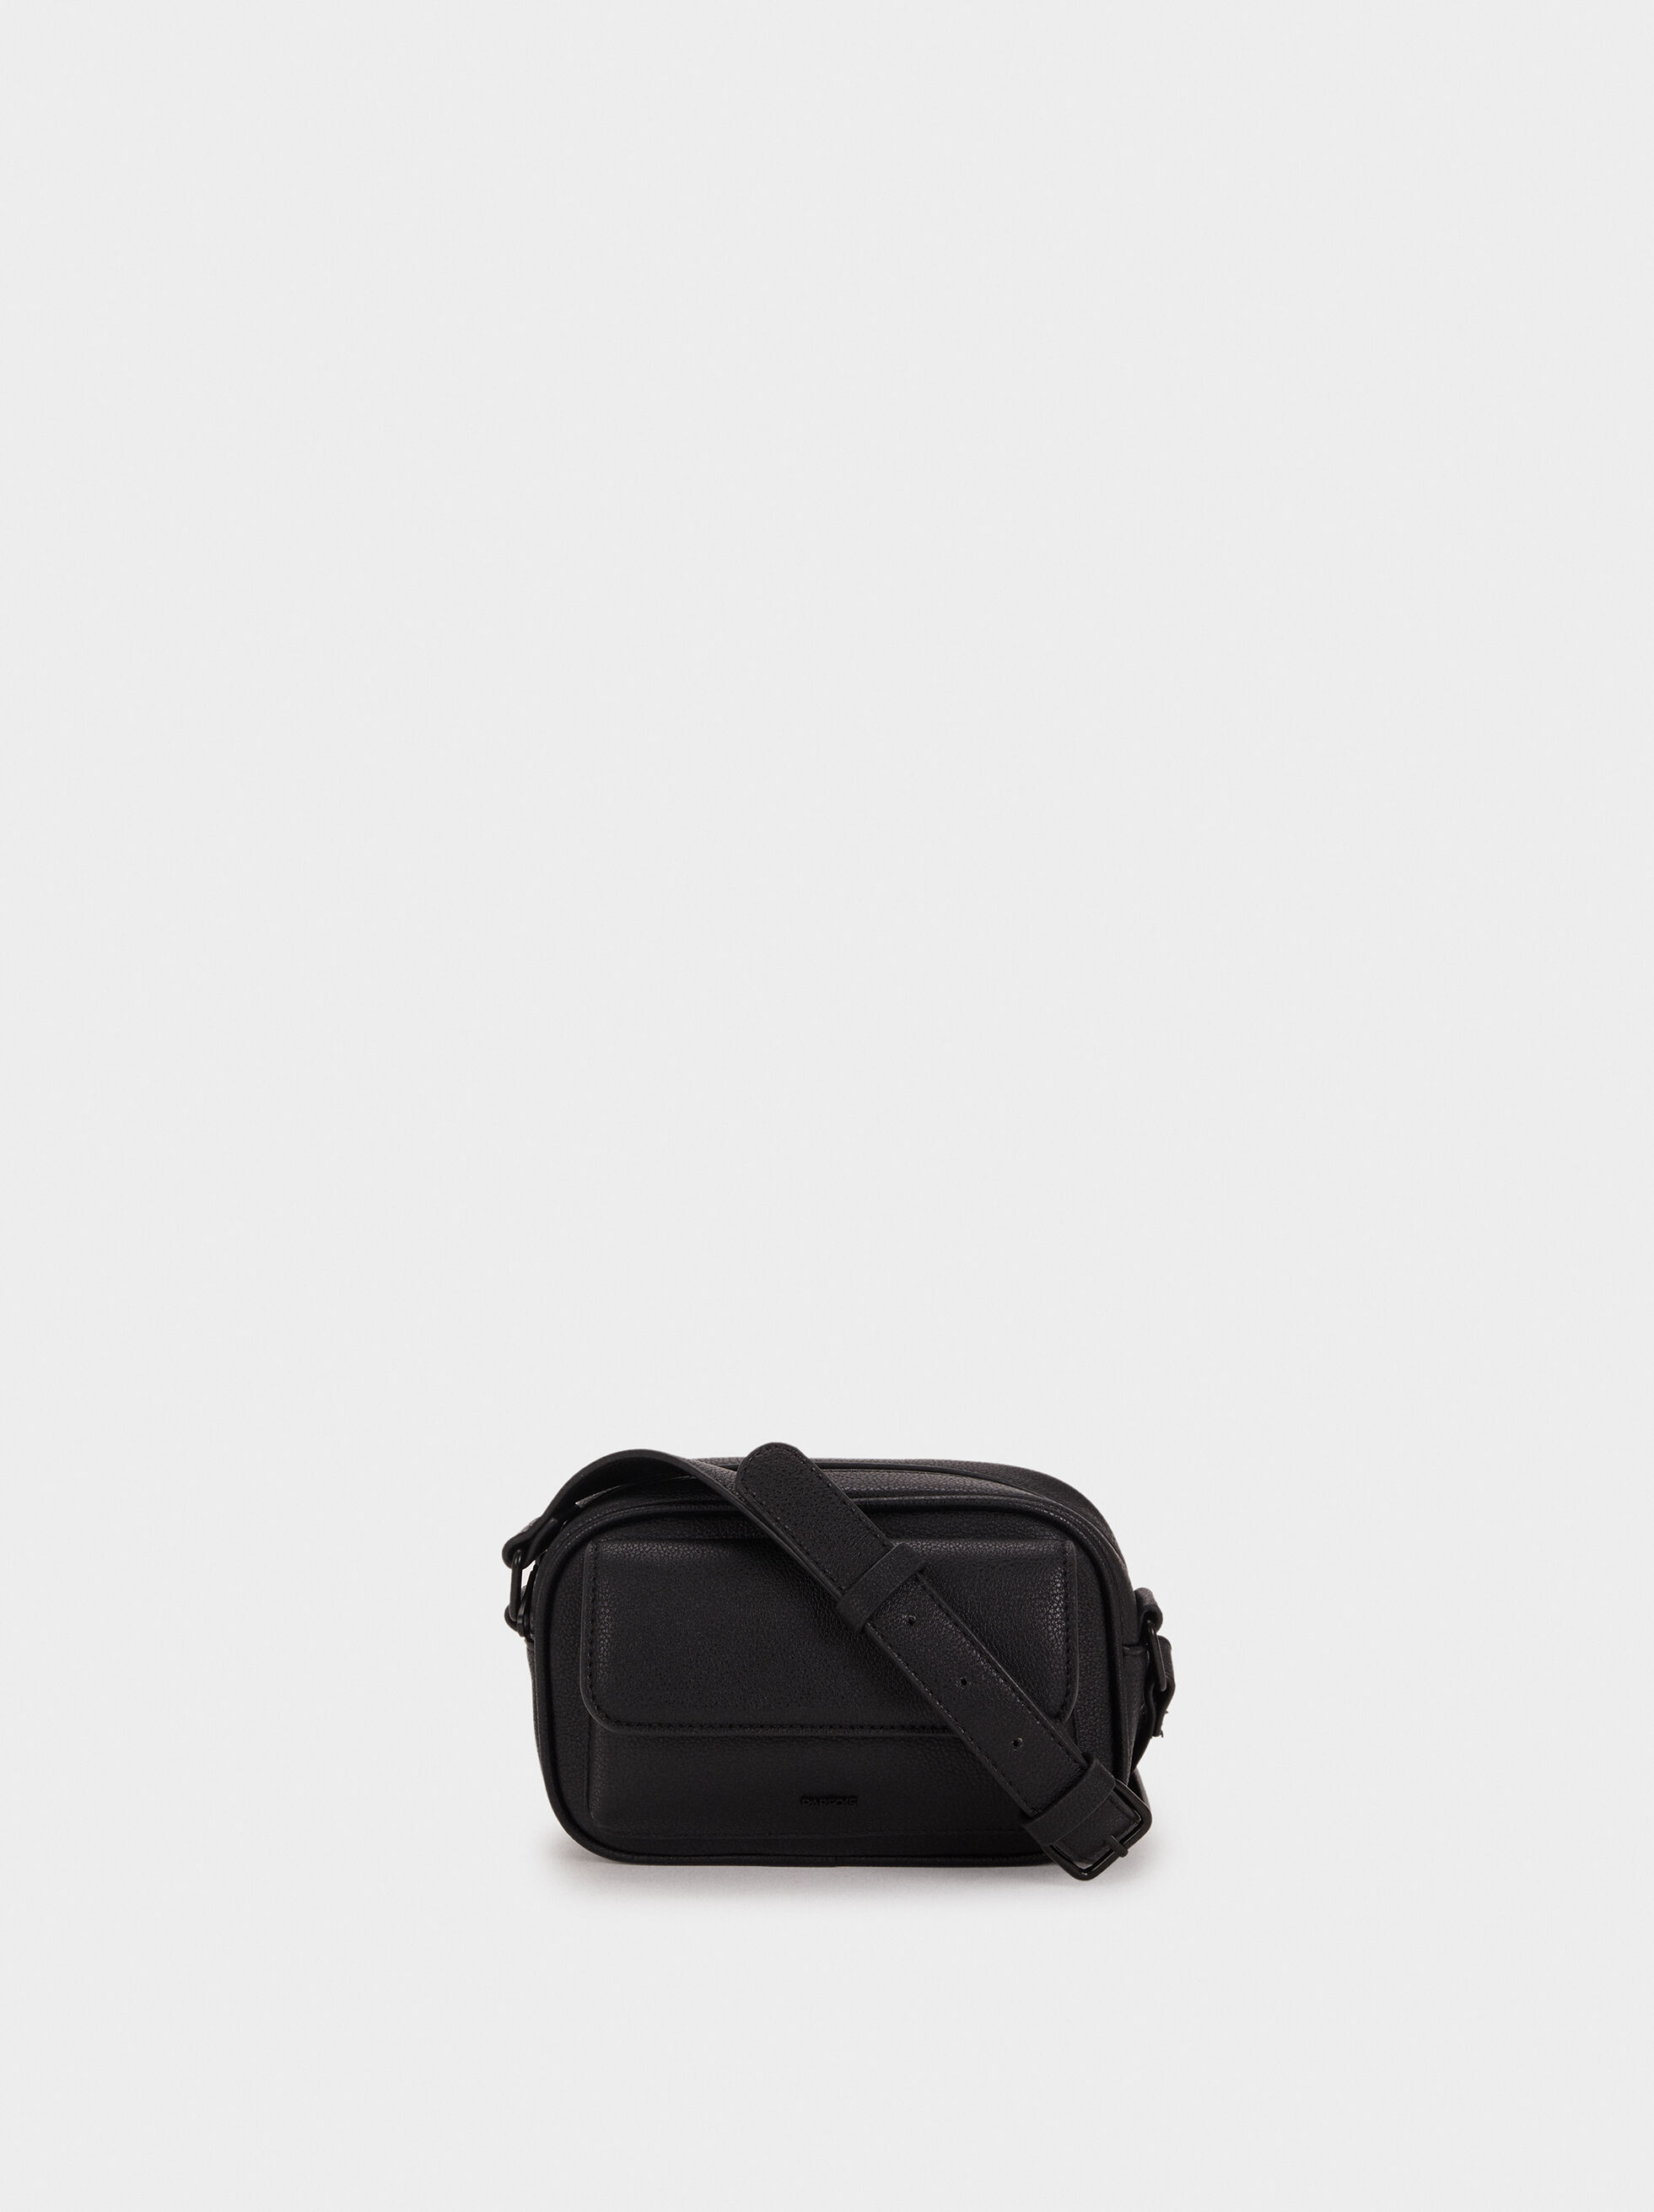 Shoulder Bag With Outer Pocket, , hi-res